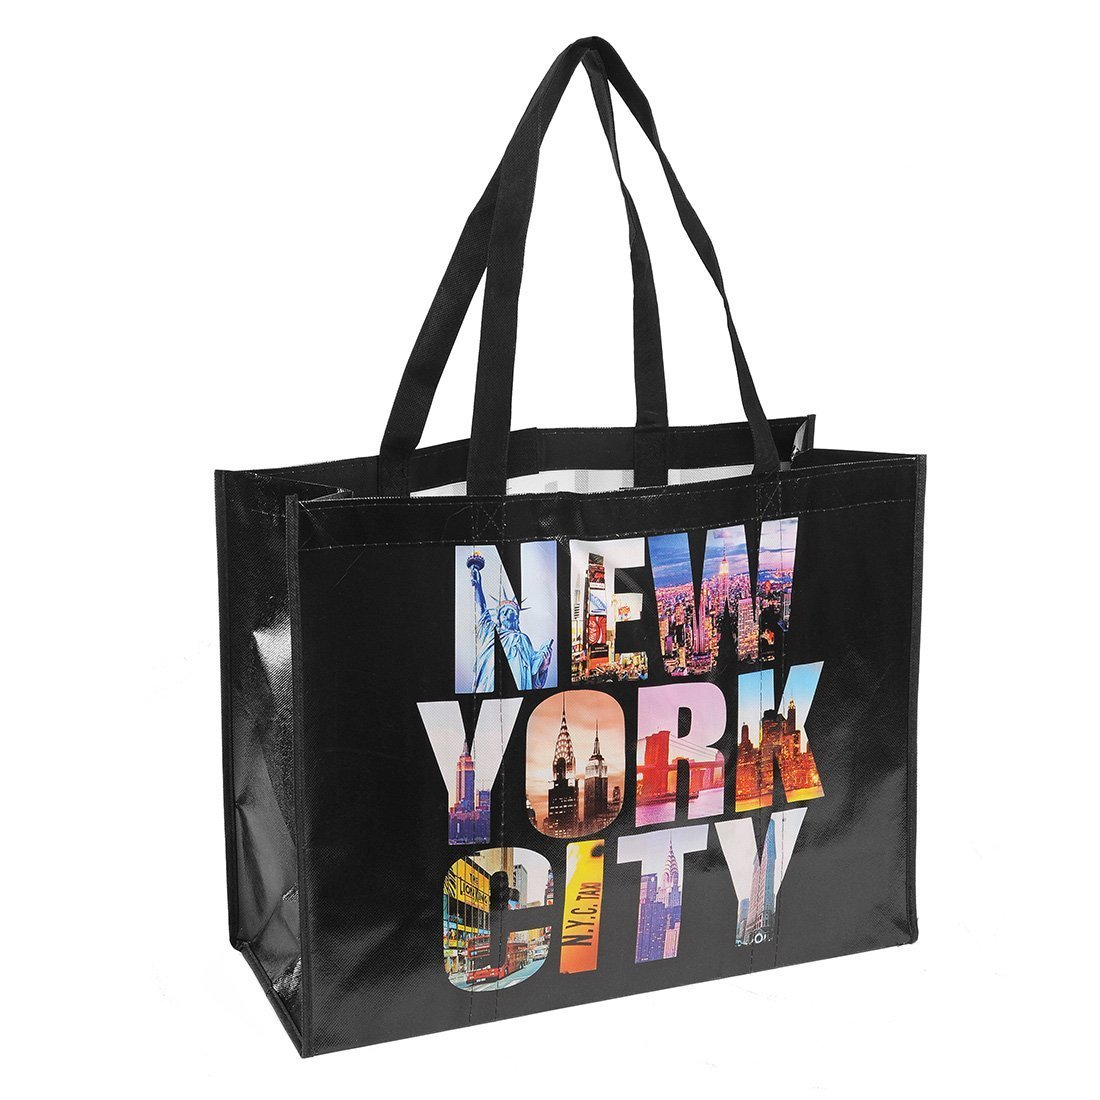 c161477fb6e1 Amazon.com  NYC Photo Reusable Shopping Tote Bag – New York City (Black) by  Universal Souvenir  Reusable Grocery Bags  Kitchen   Dining